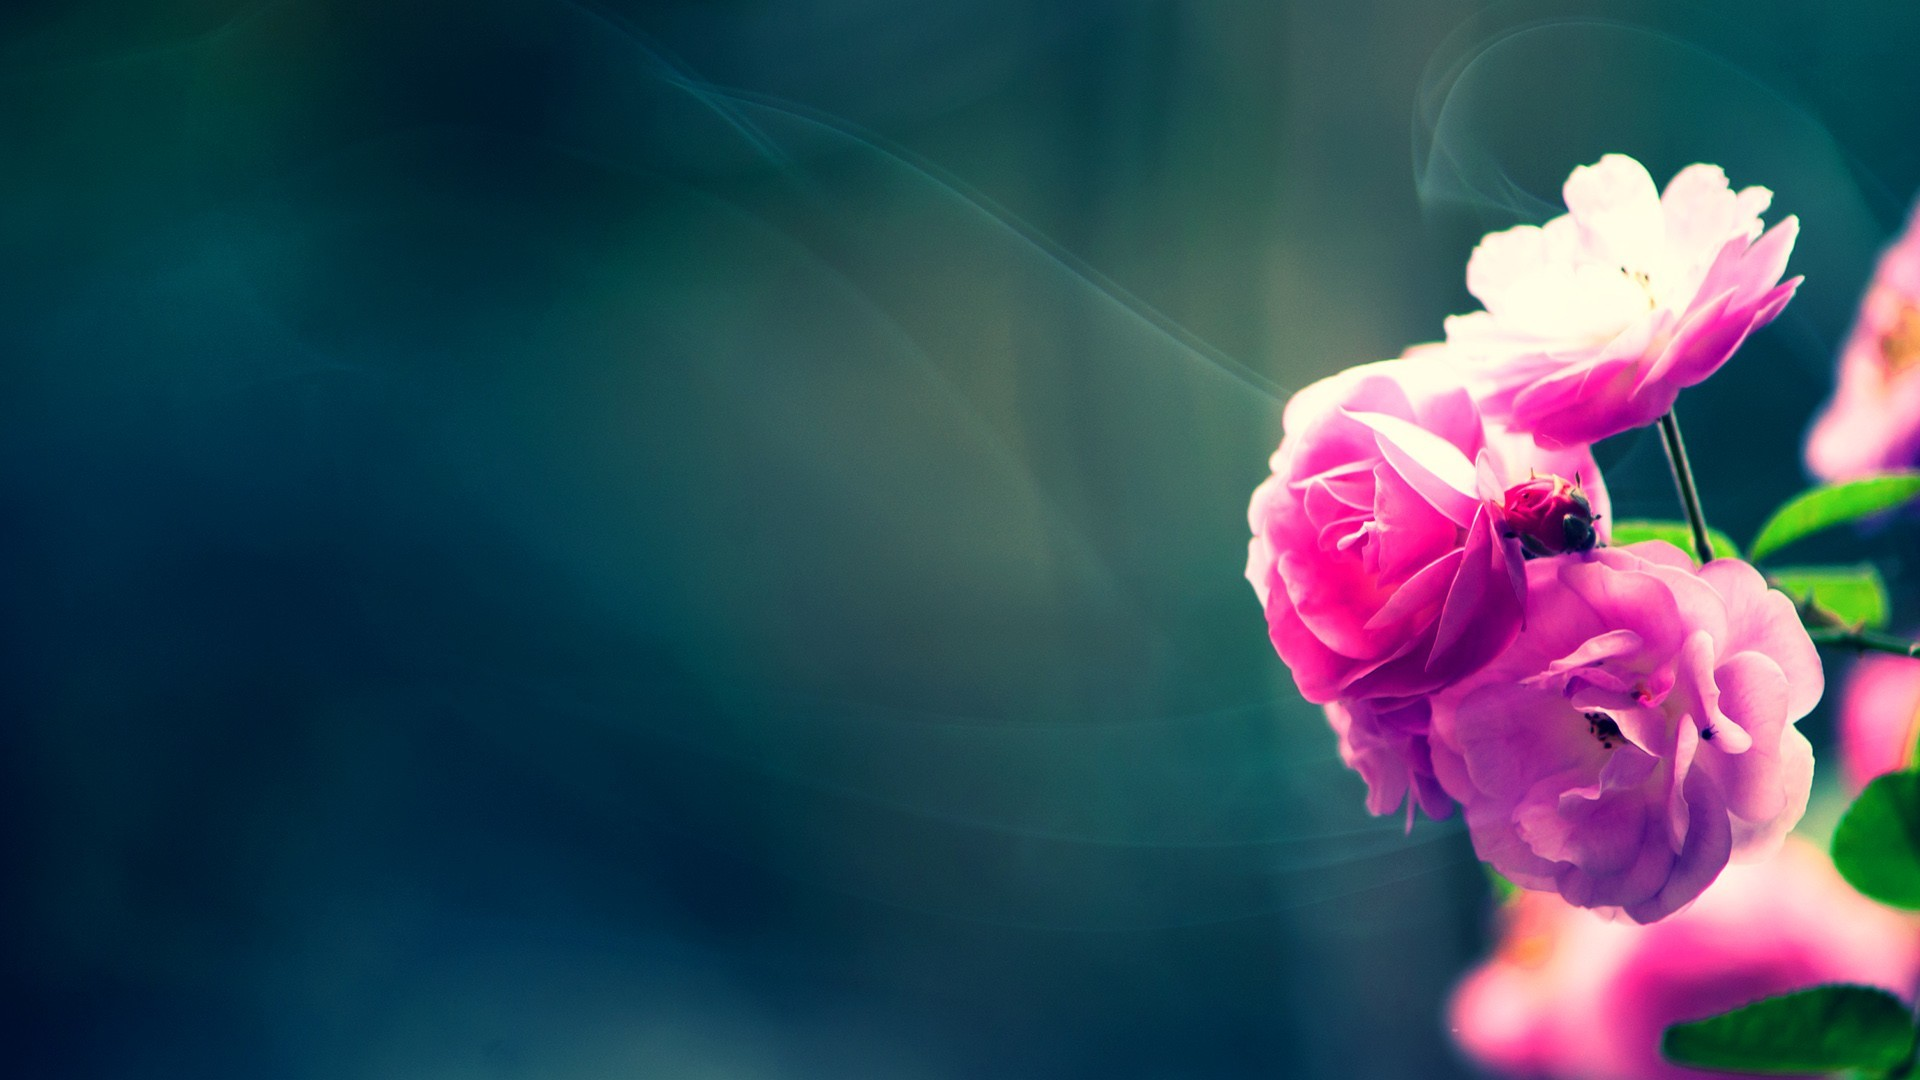 Hd Flower Wallpaper 75 Pictures